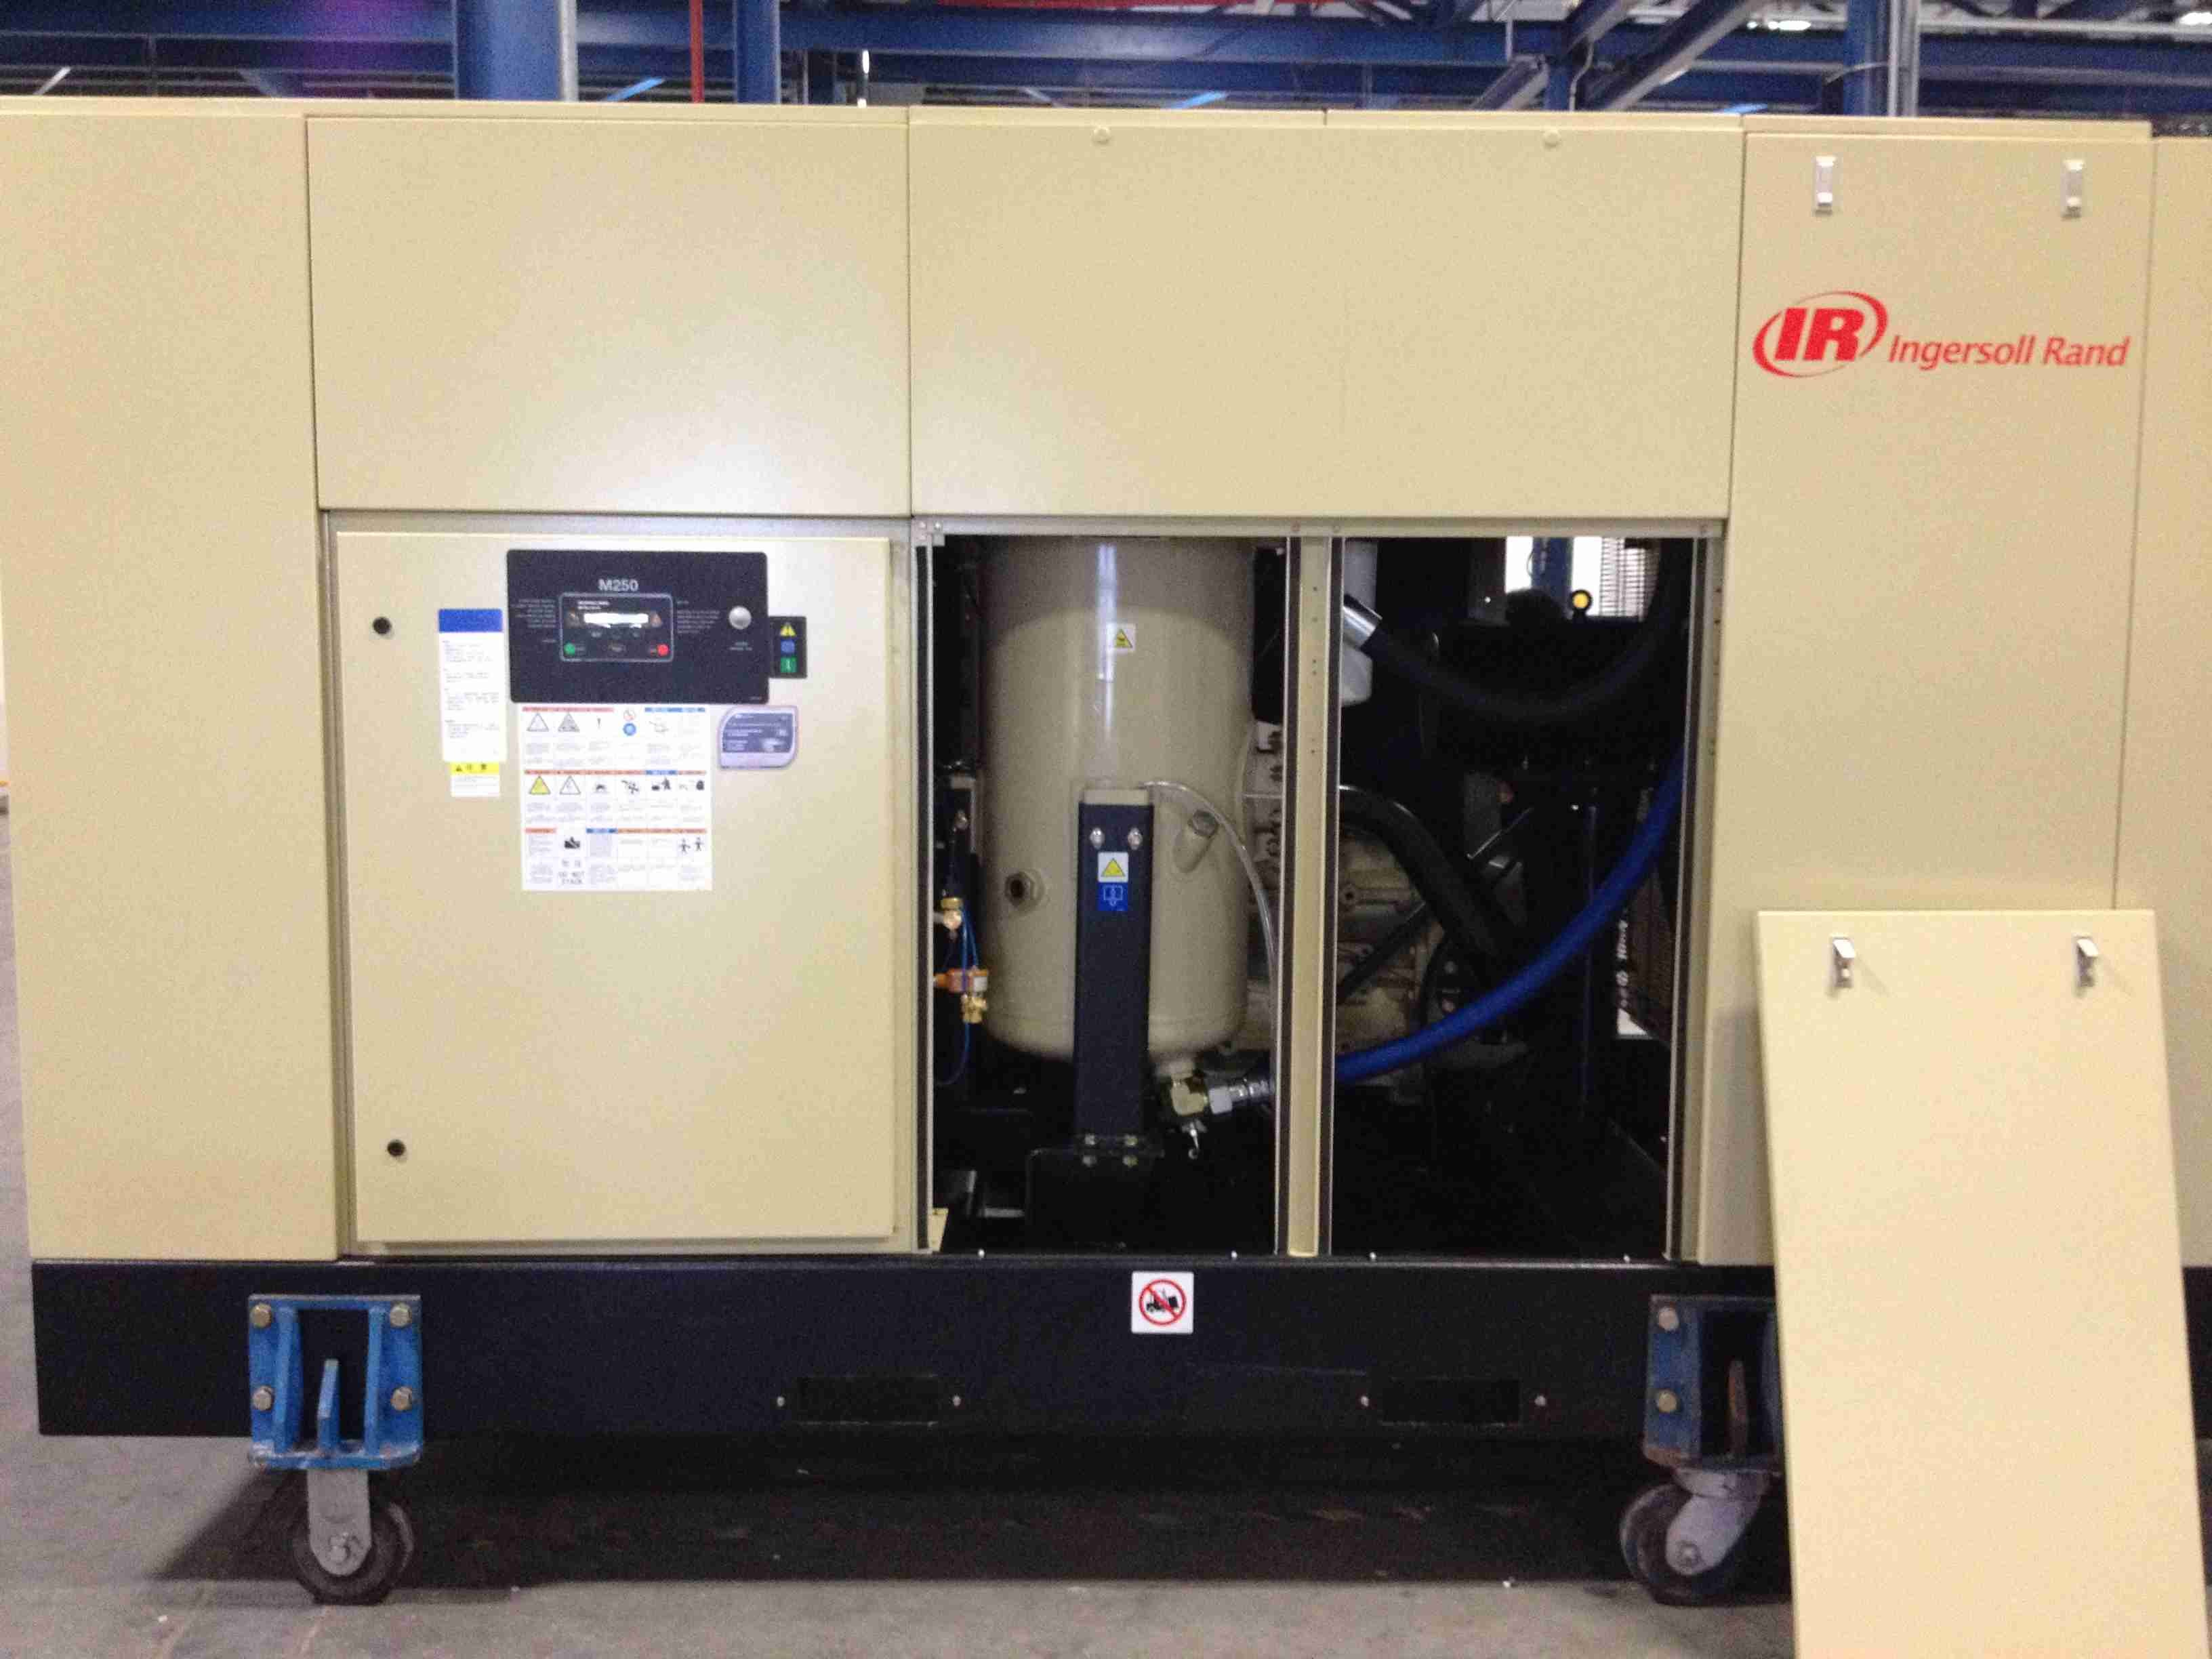 Ingersoll Rand Oil-Free Air Compressors